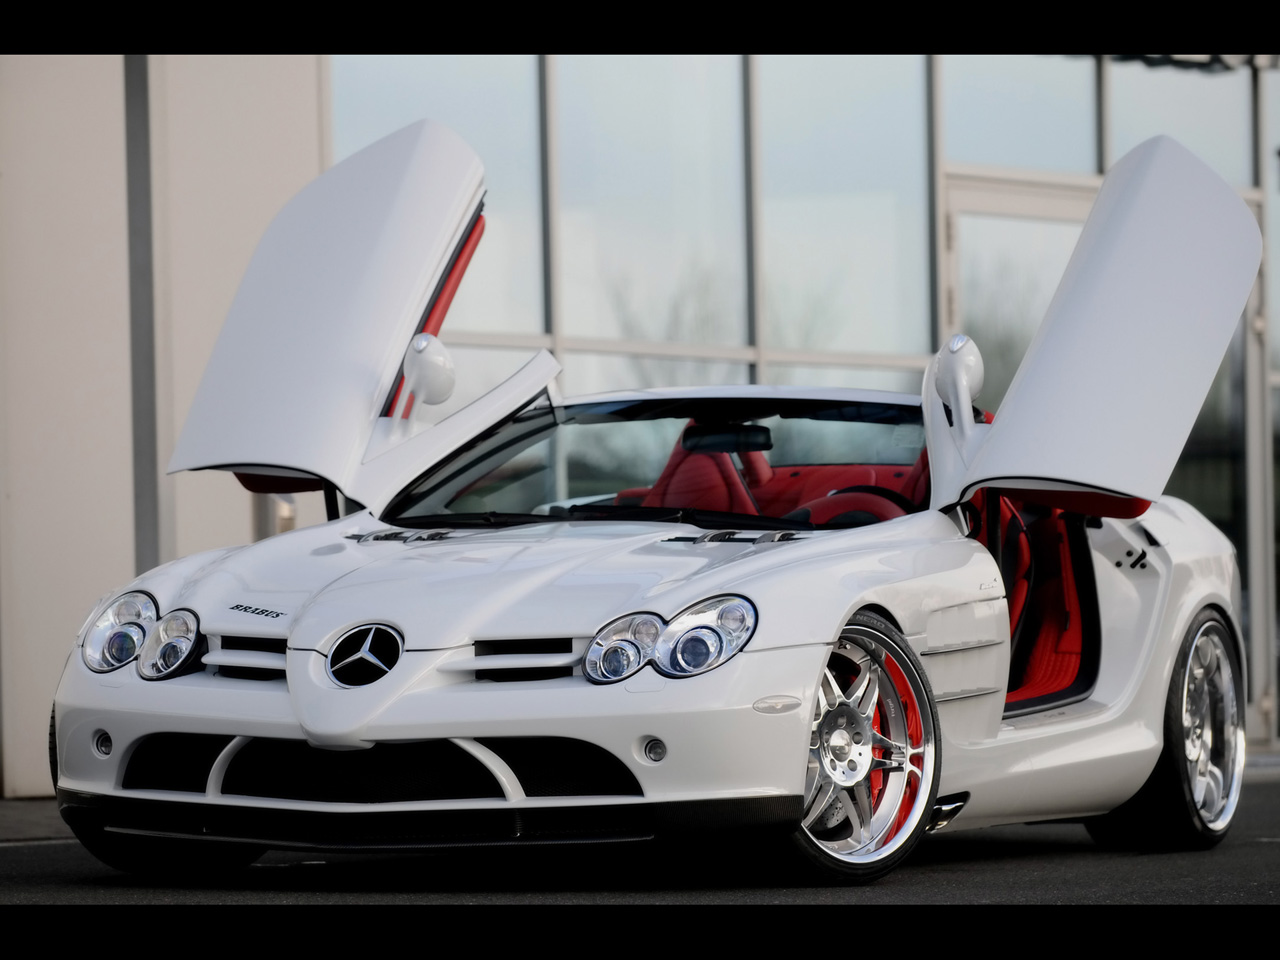 Mercedes slr mclaren world of cars for Mercedes benz slk brabus price